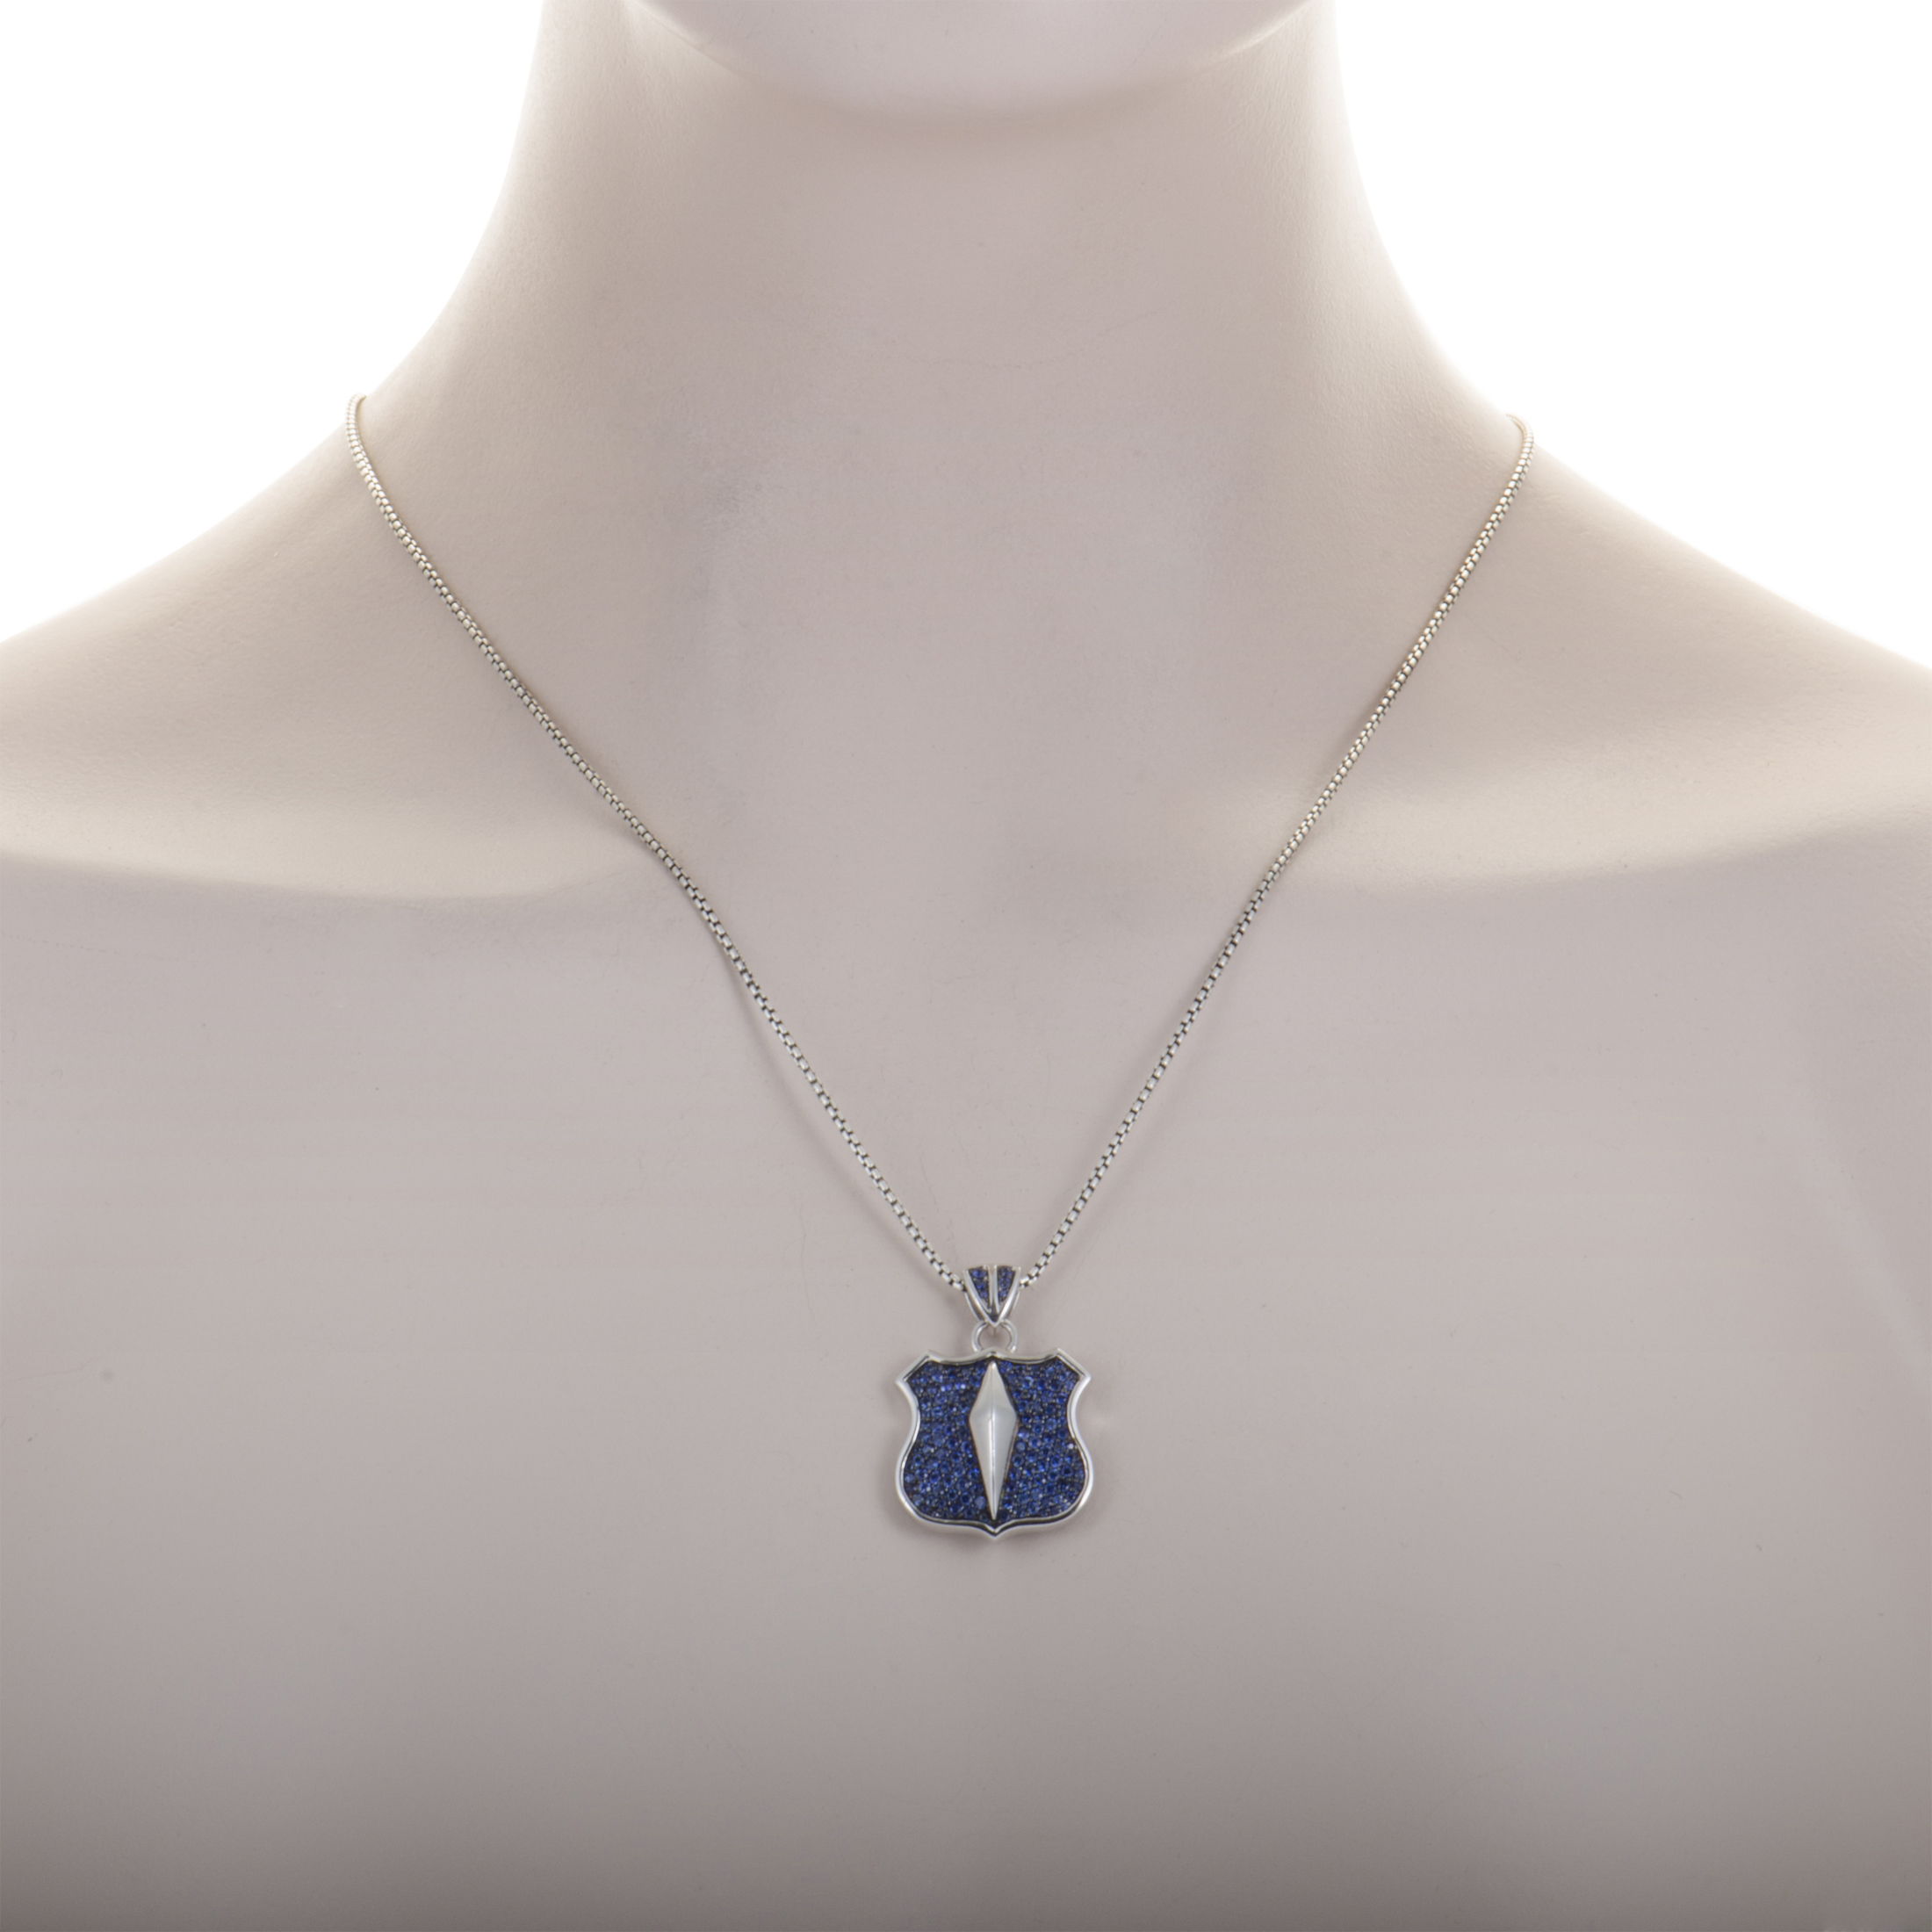 Stephen Webster Highwayman Mens Silver and Sapphire Pave Pendant Necklace